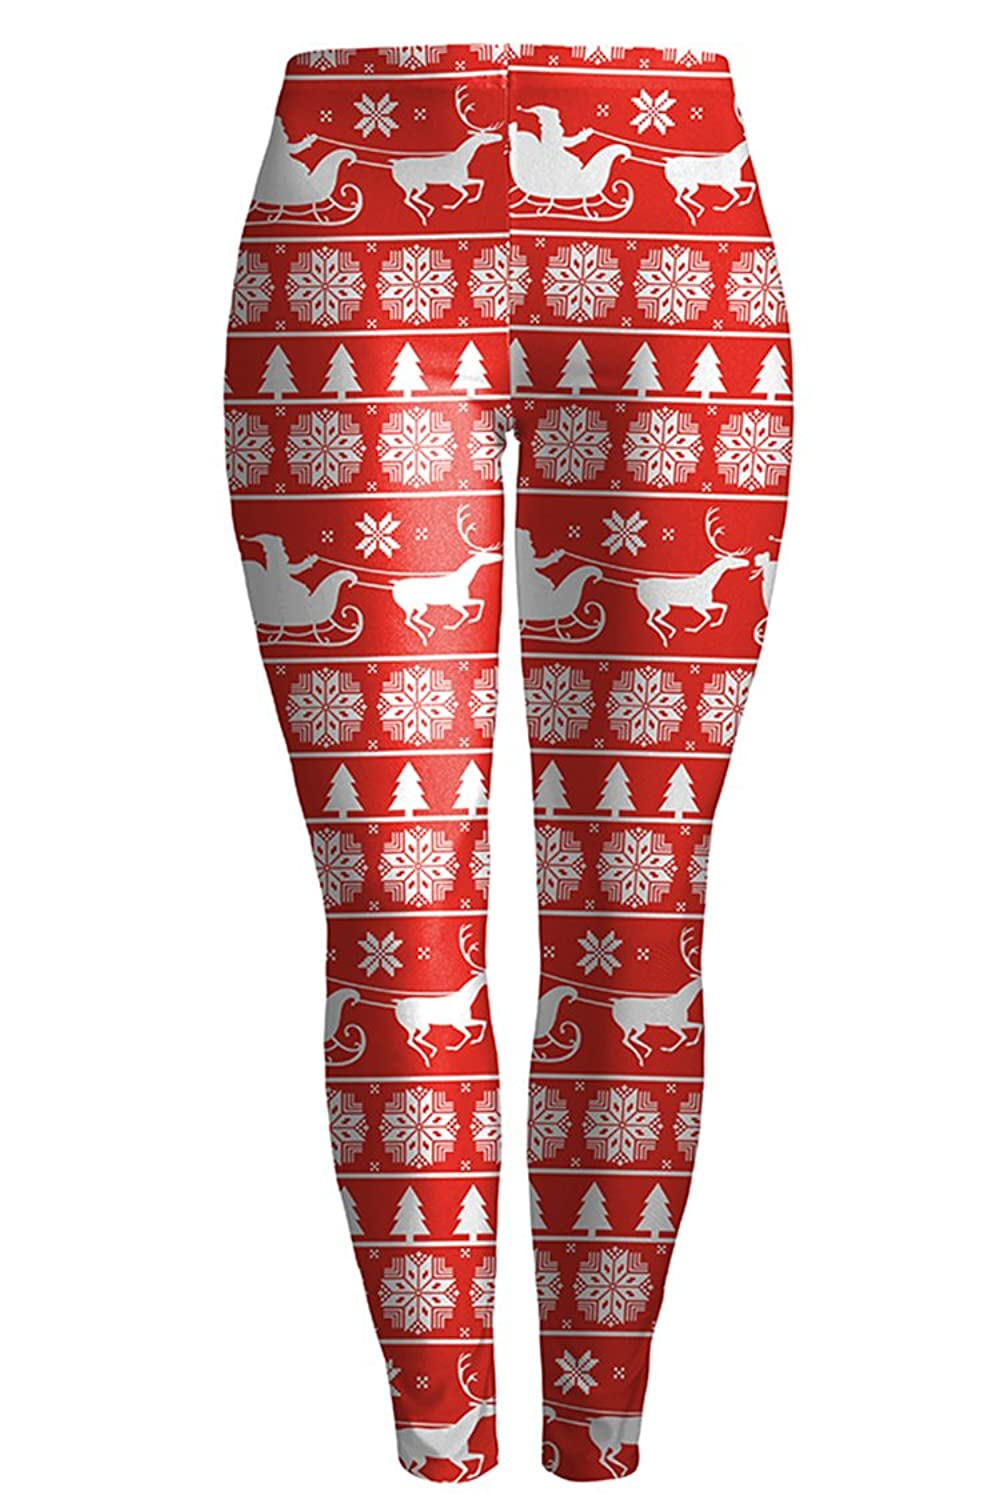 f8b1aa667ab44 Style:stylish printed Christamas party fitness leggings,can be matched with  costumes or sweater shirts. Christmas Santa Clause,Reindeer,Snowflake  ornaments ...